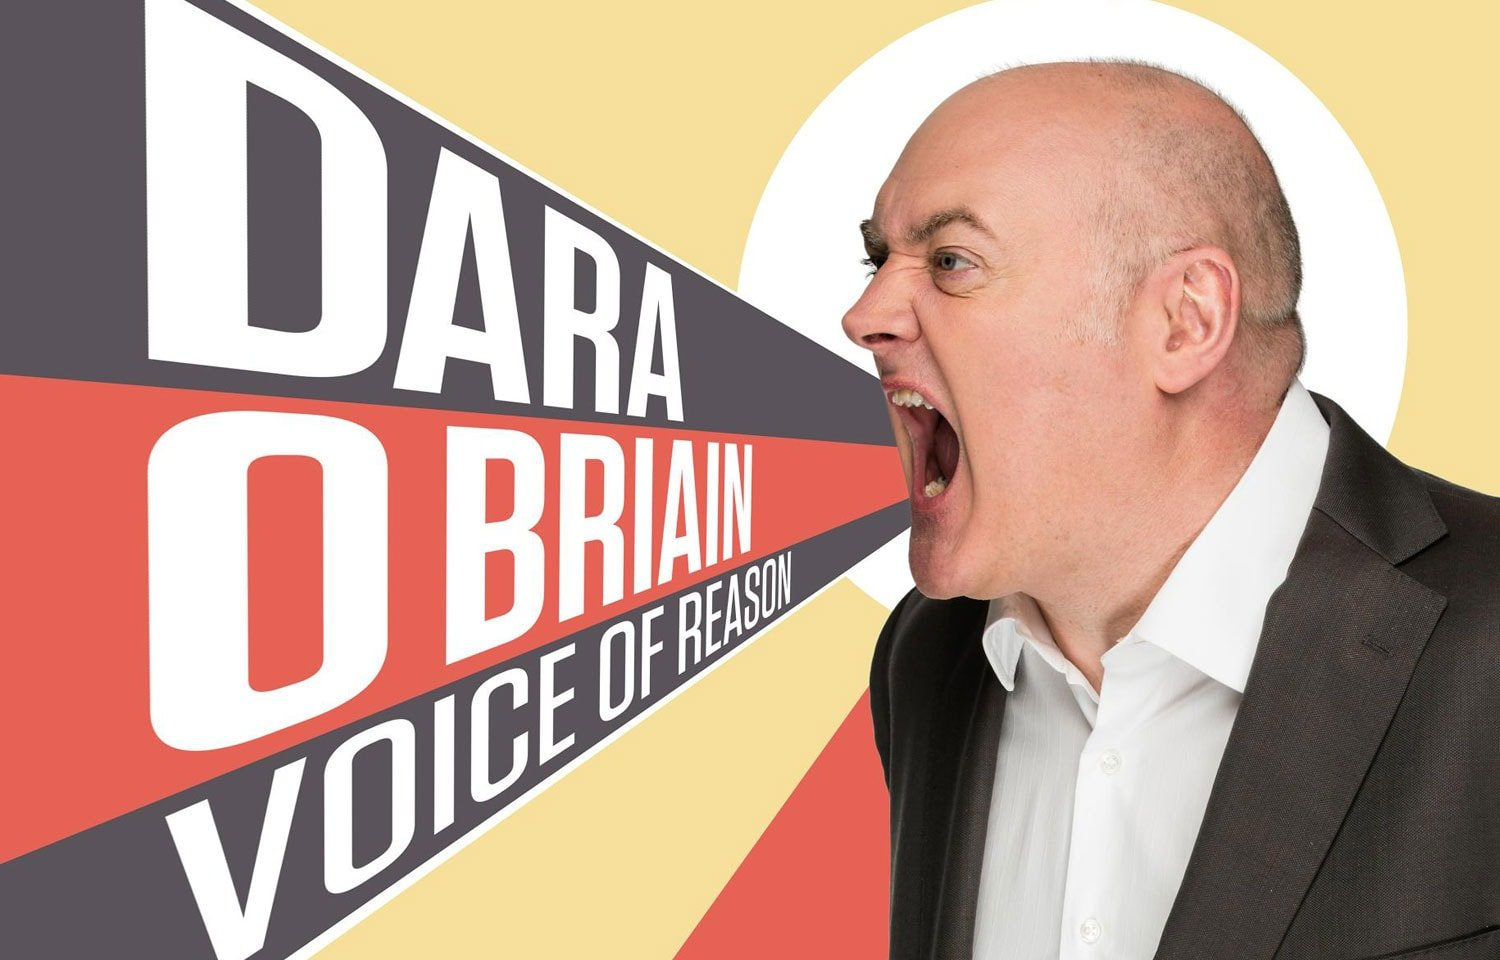 DARA O BRIAIN'S VOICE OF REASON TOUR EXTENDED INTO SPRING 2019